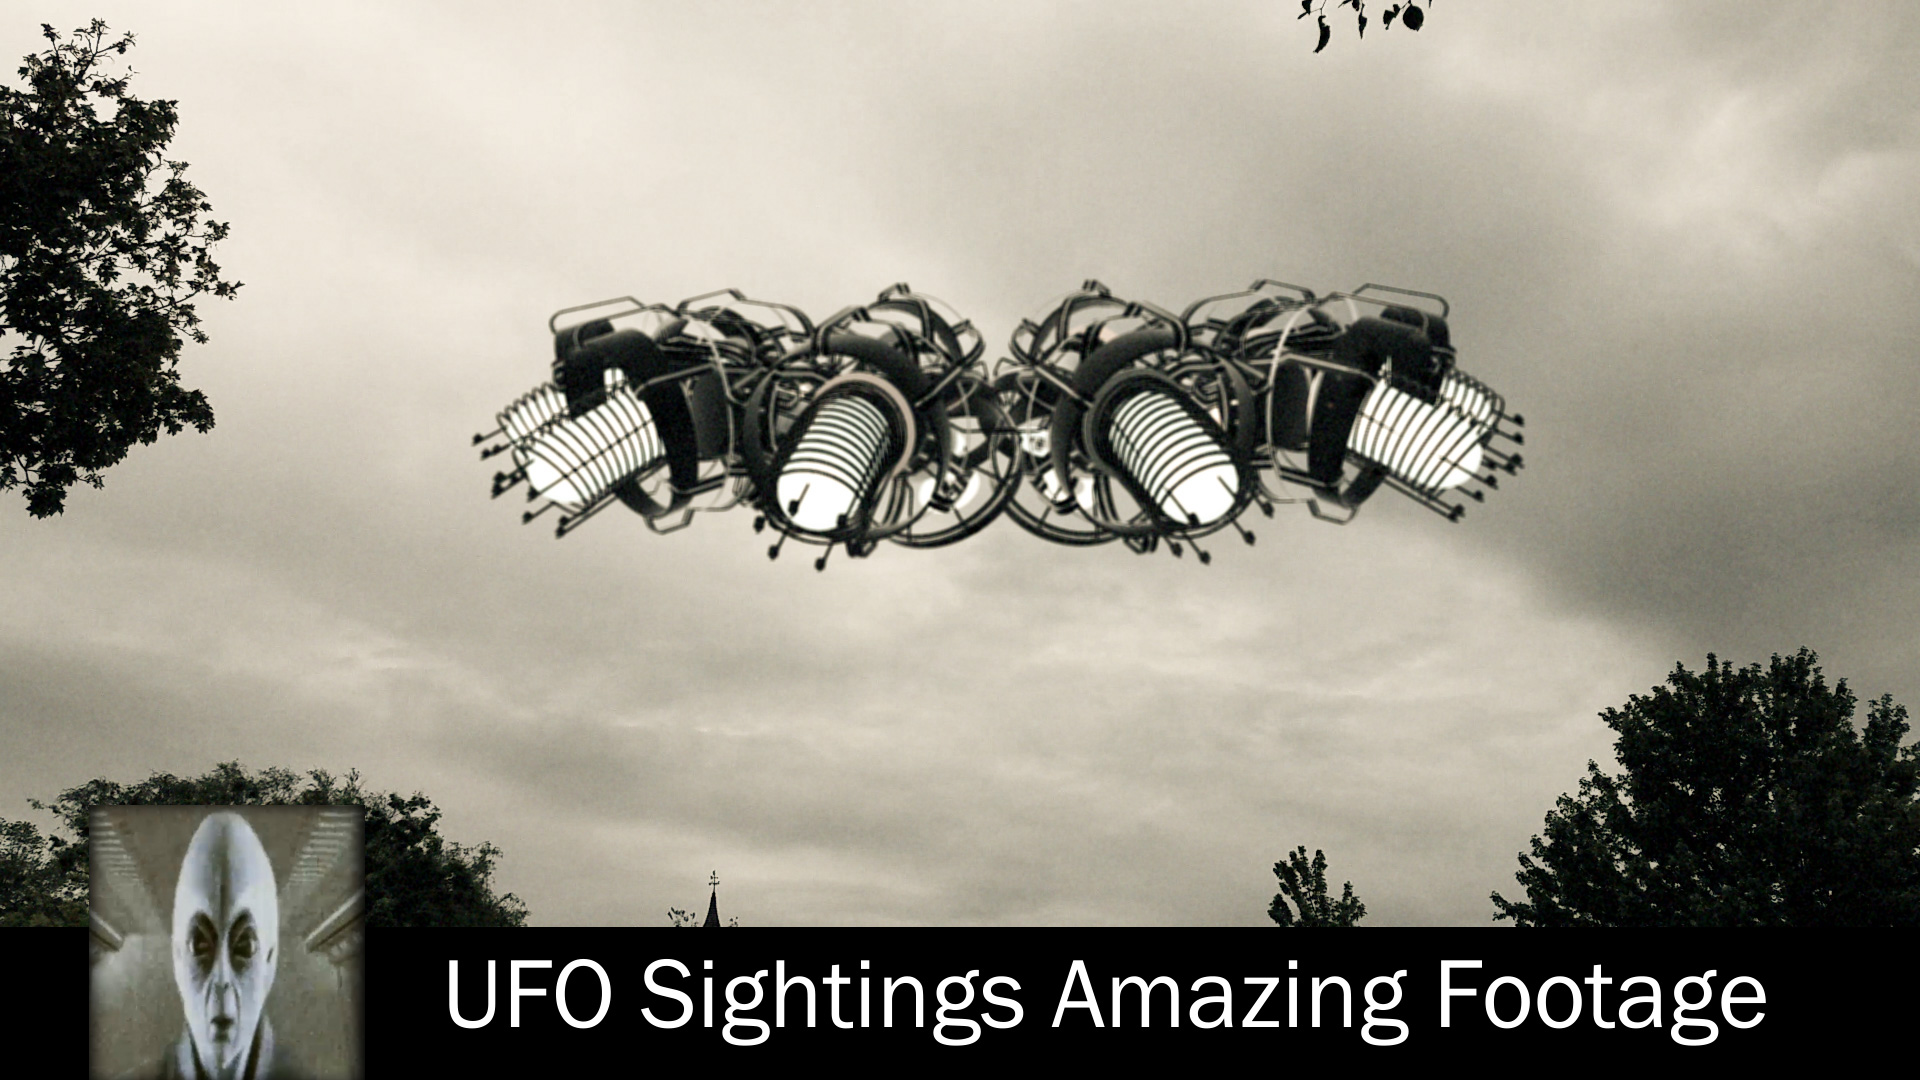 UFO Sightings Amazing Footage June 8th 2017